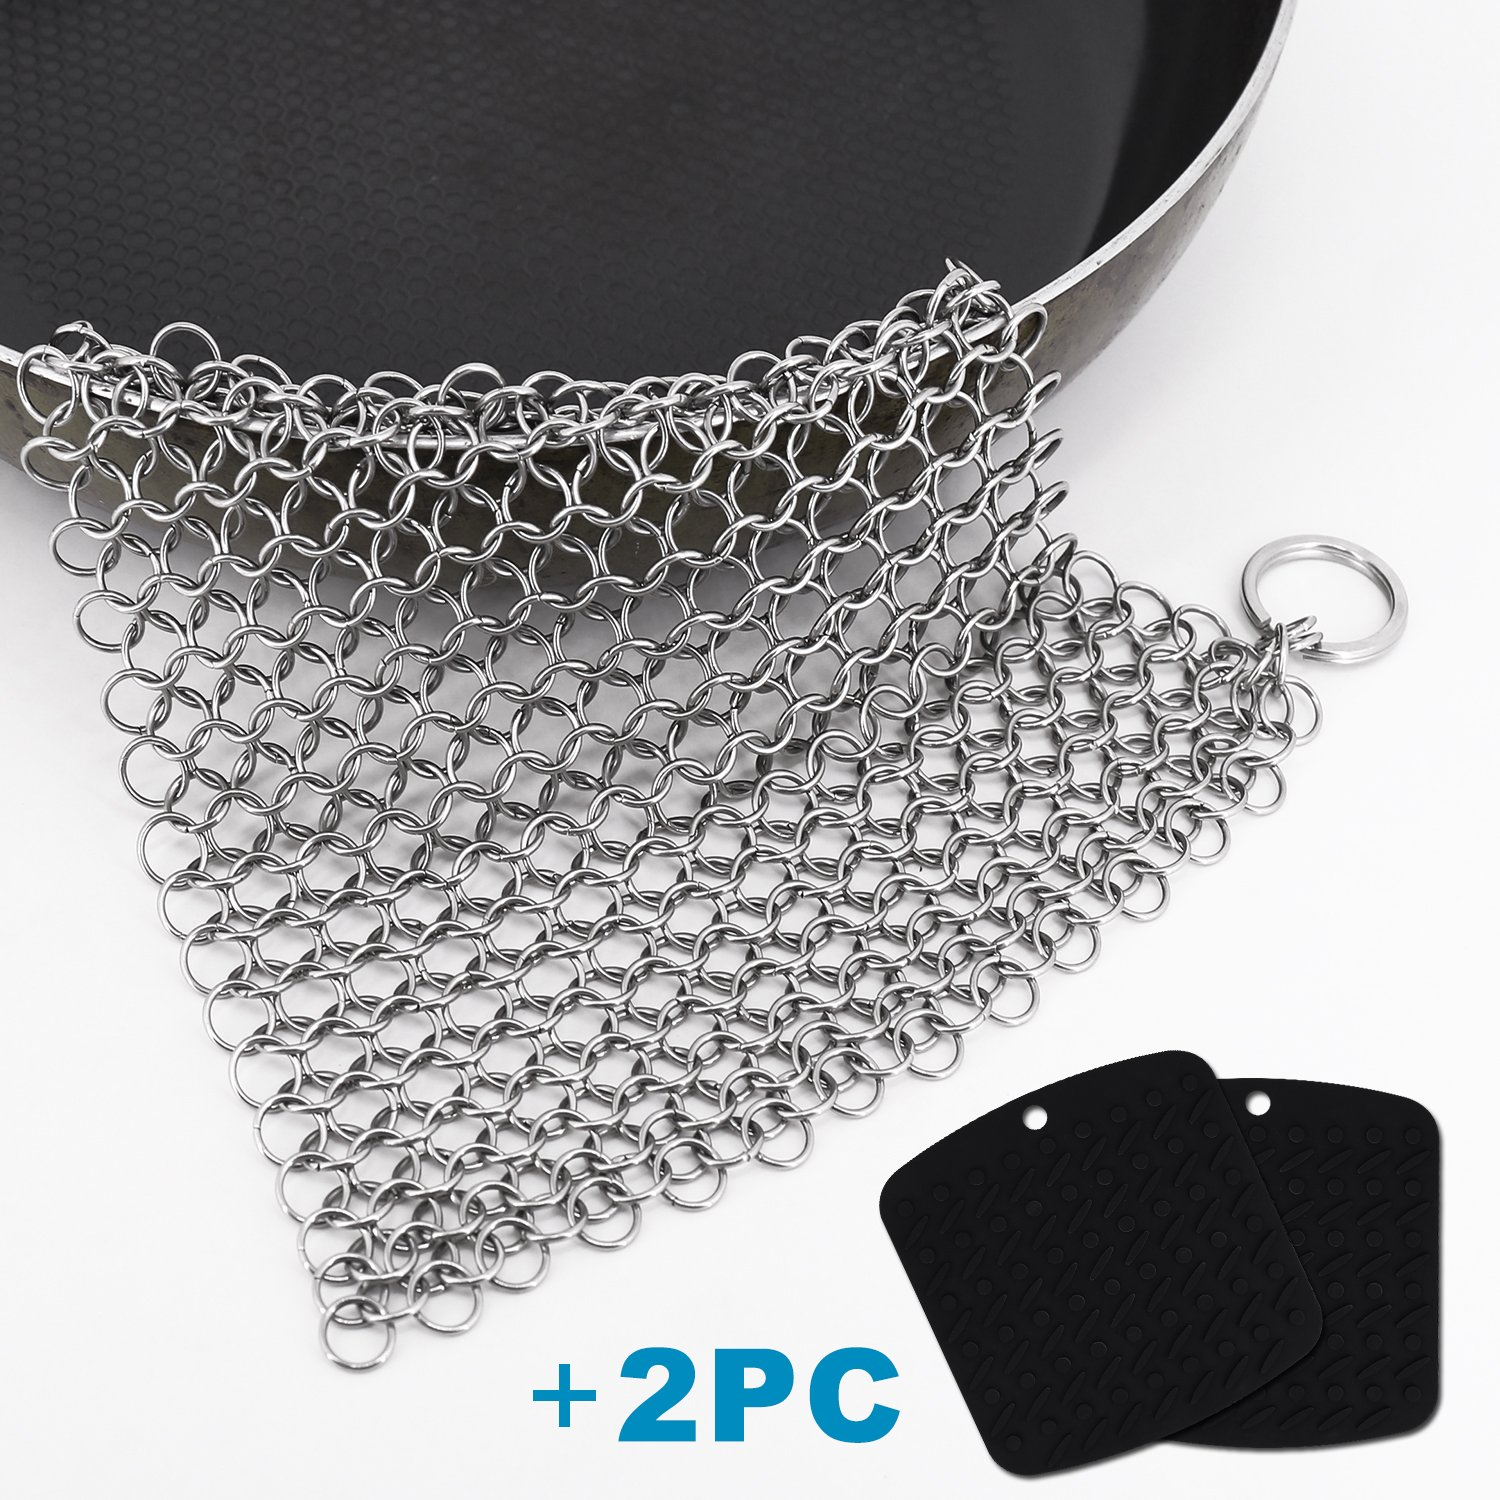 scrubbing brushes,Cast Iron Cleaner 8 x 6 Inch 316L Stainless Steel Chainmail Scrubber with 2 Pack Silicone Trivet Mat